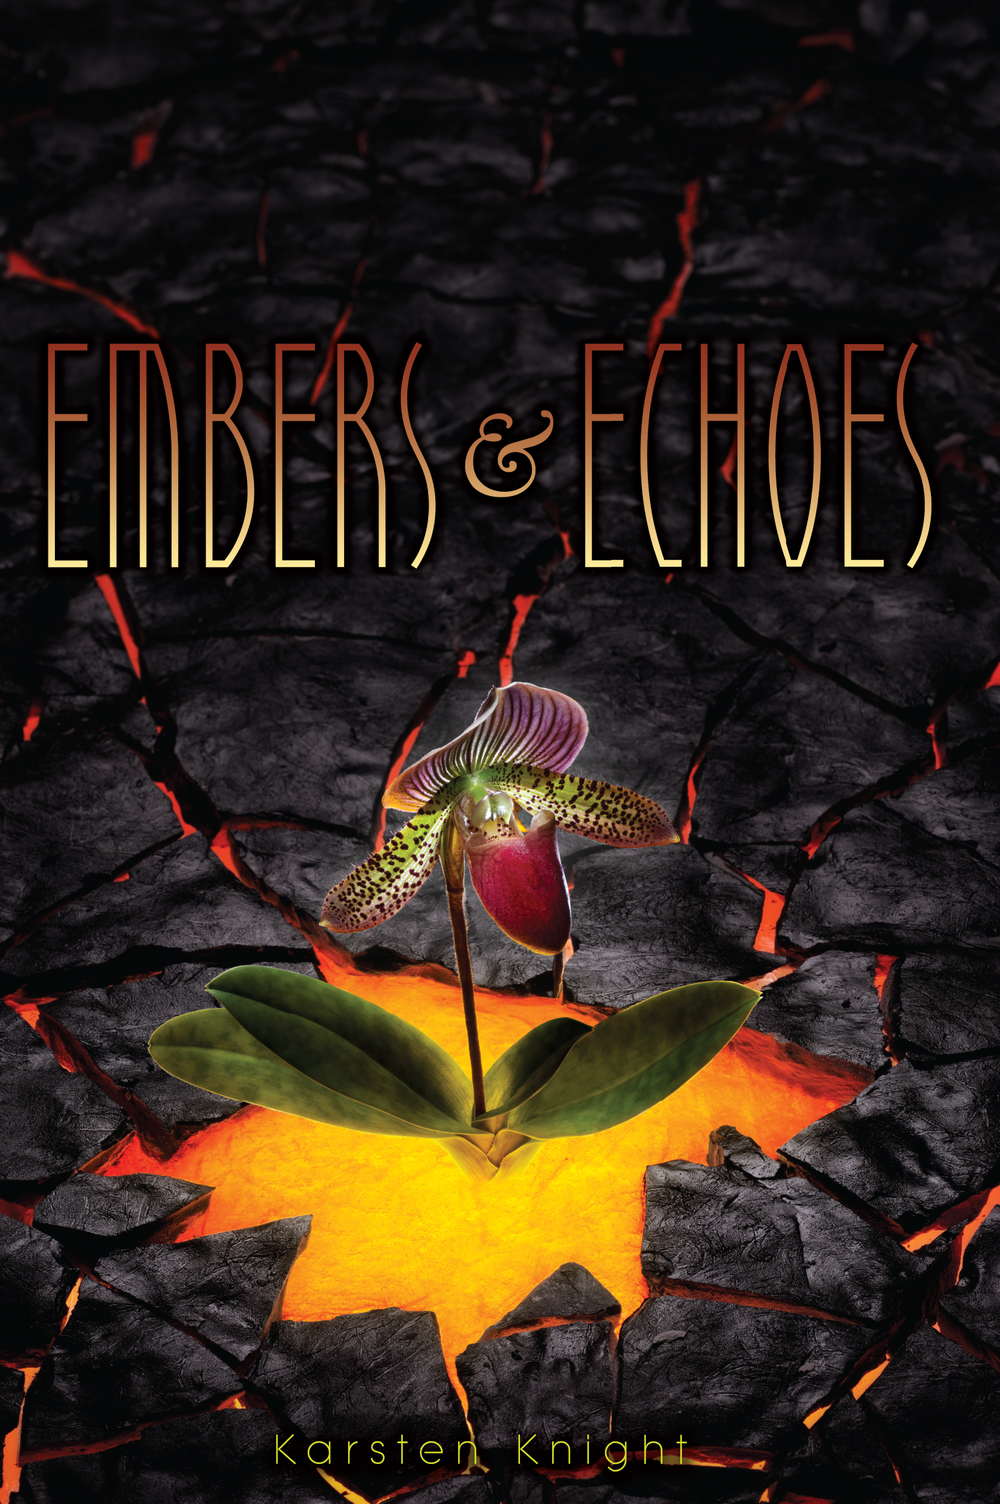 EMBERS & ECHOES by Karsten Knight